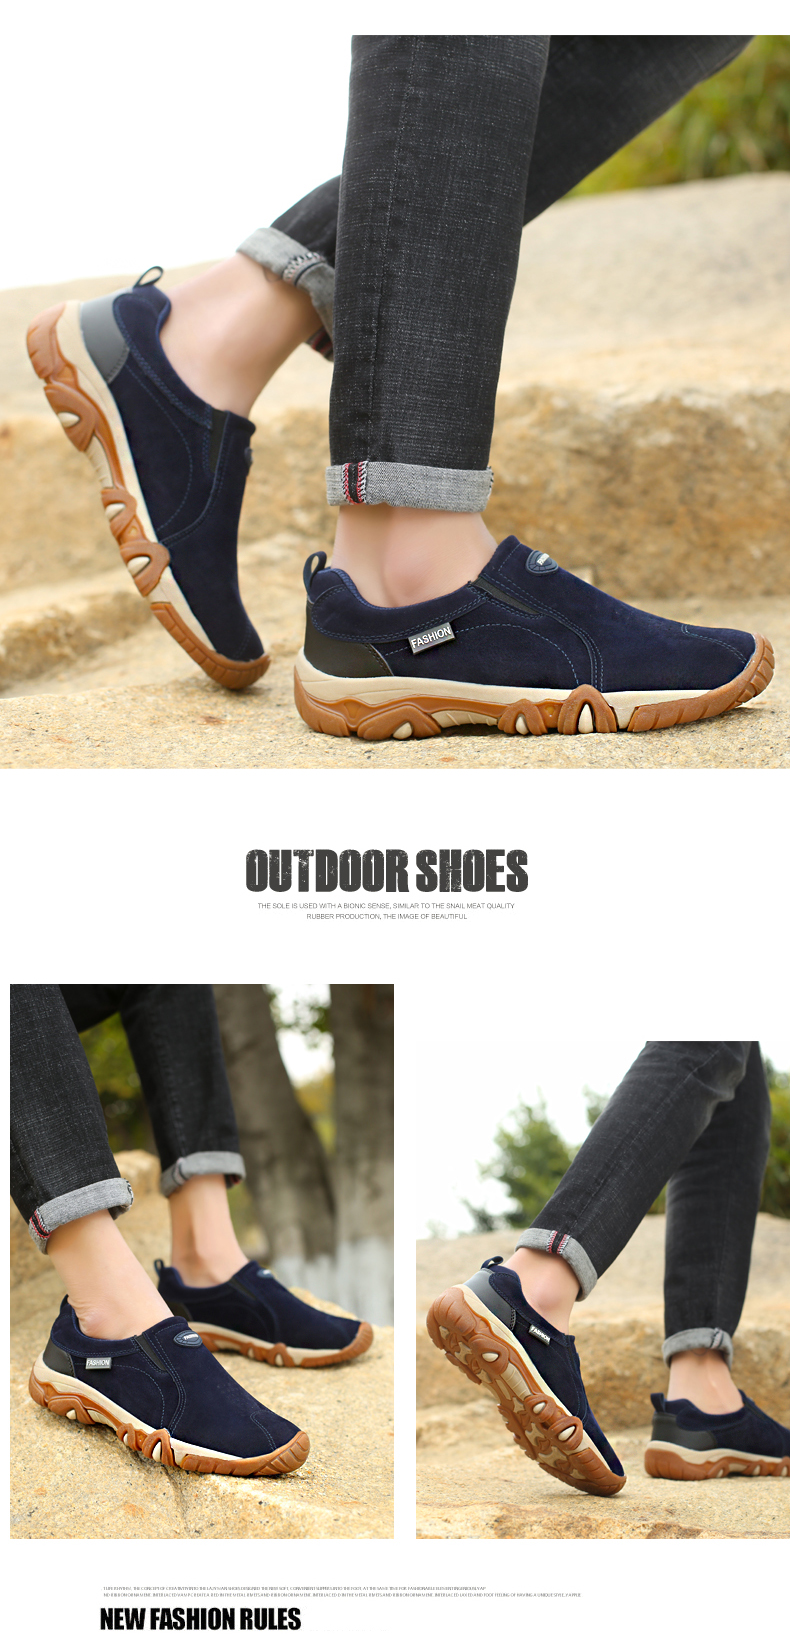 SHANTA 2019 New Men Shoes Leather Loafers Breathable Spring Autumn Casual Shoes Outdoor Non Slip Men Sneakers